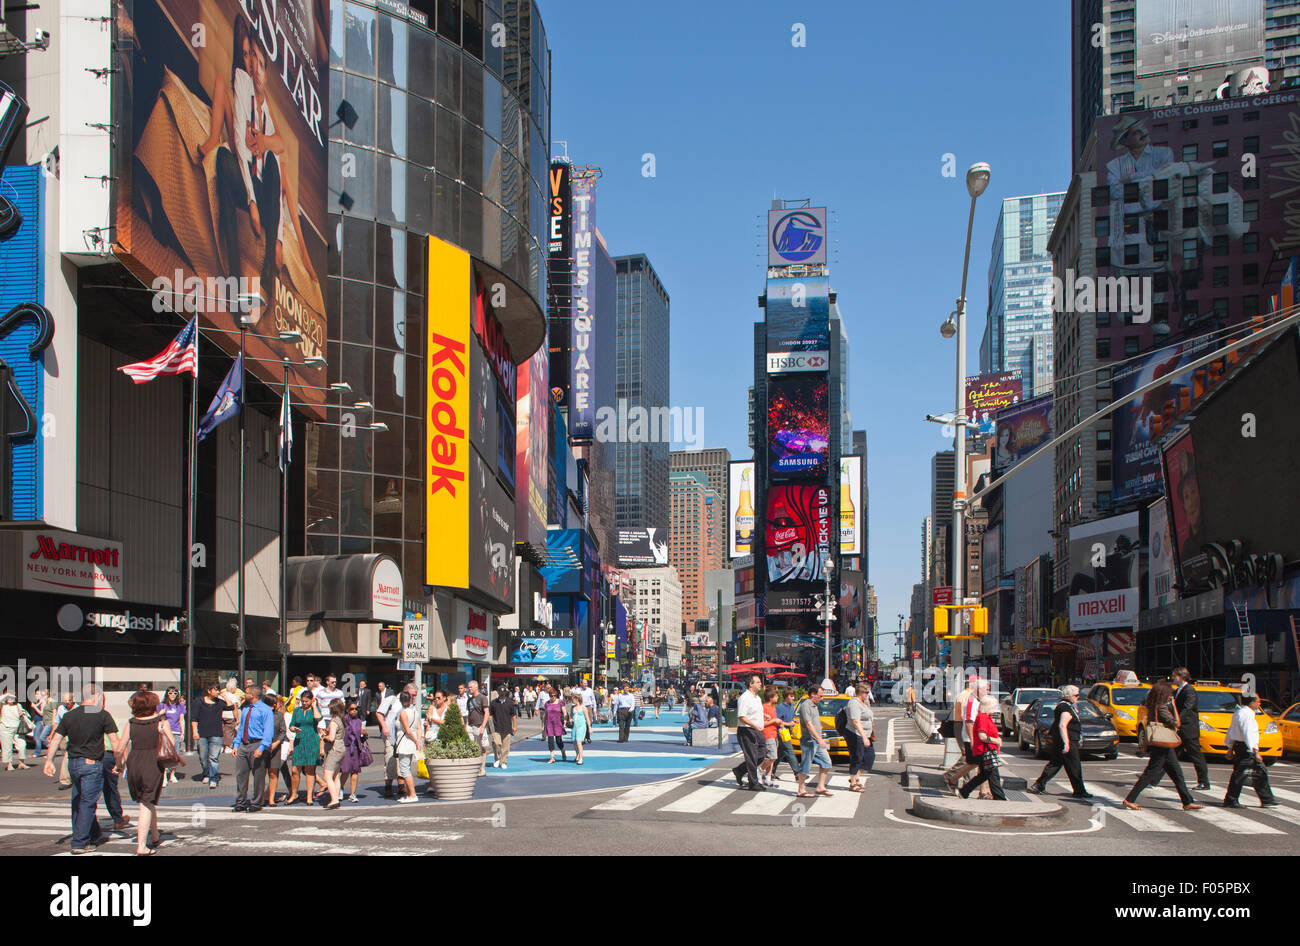 PEDESTRIANS CROSSWALK TIMES SQUARE MIDTOWN MANHATTAN NEW YORK CITY USA - Stock Image